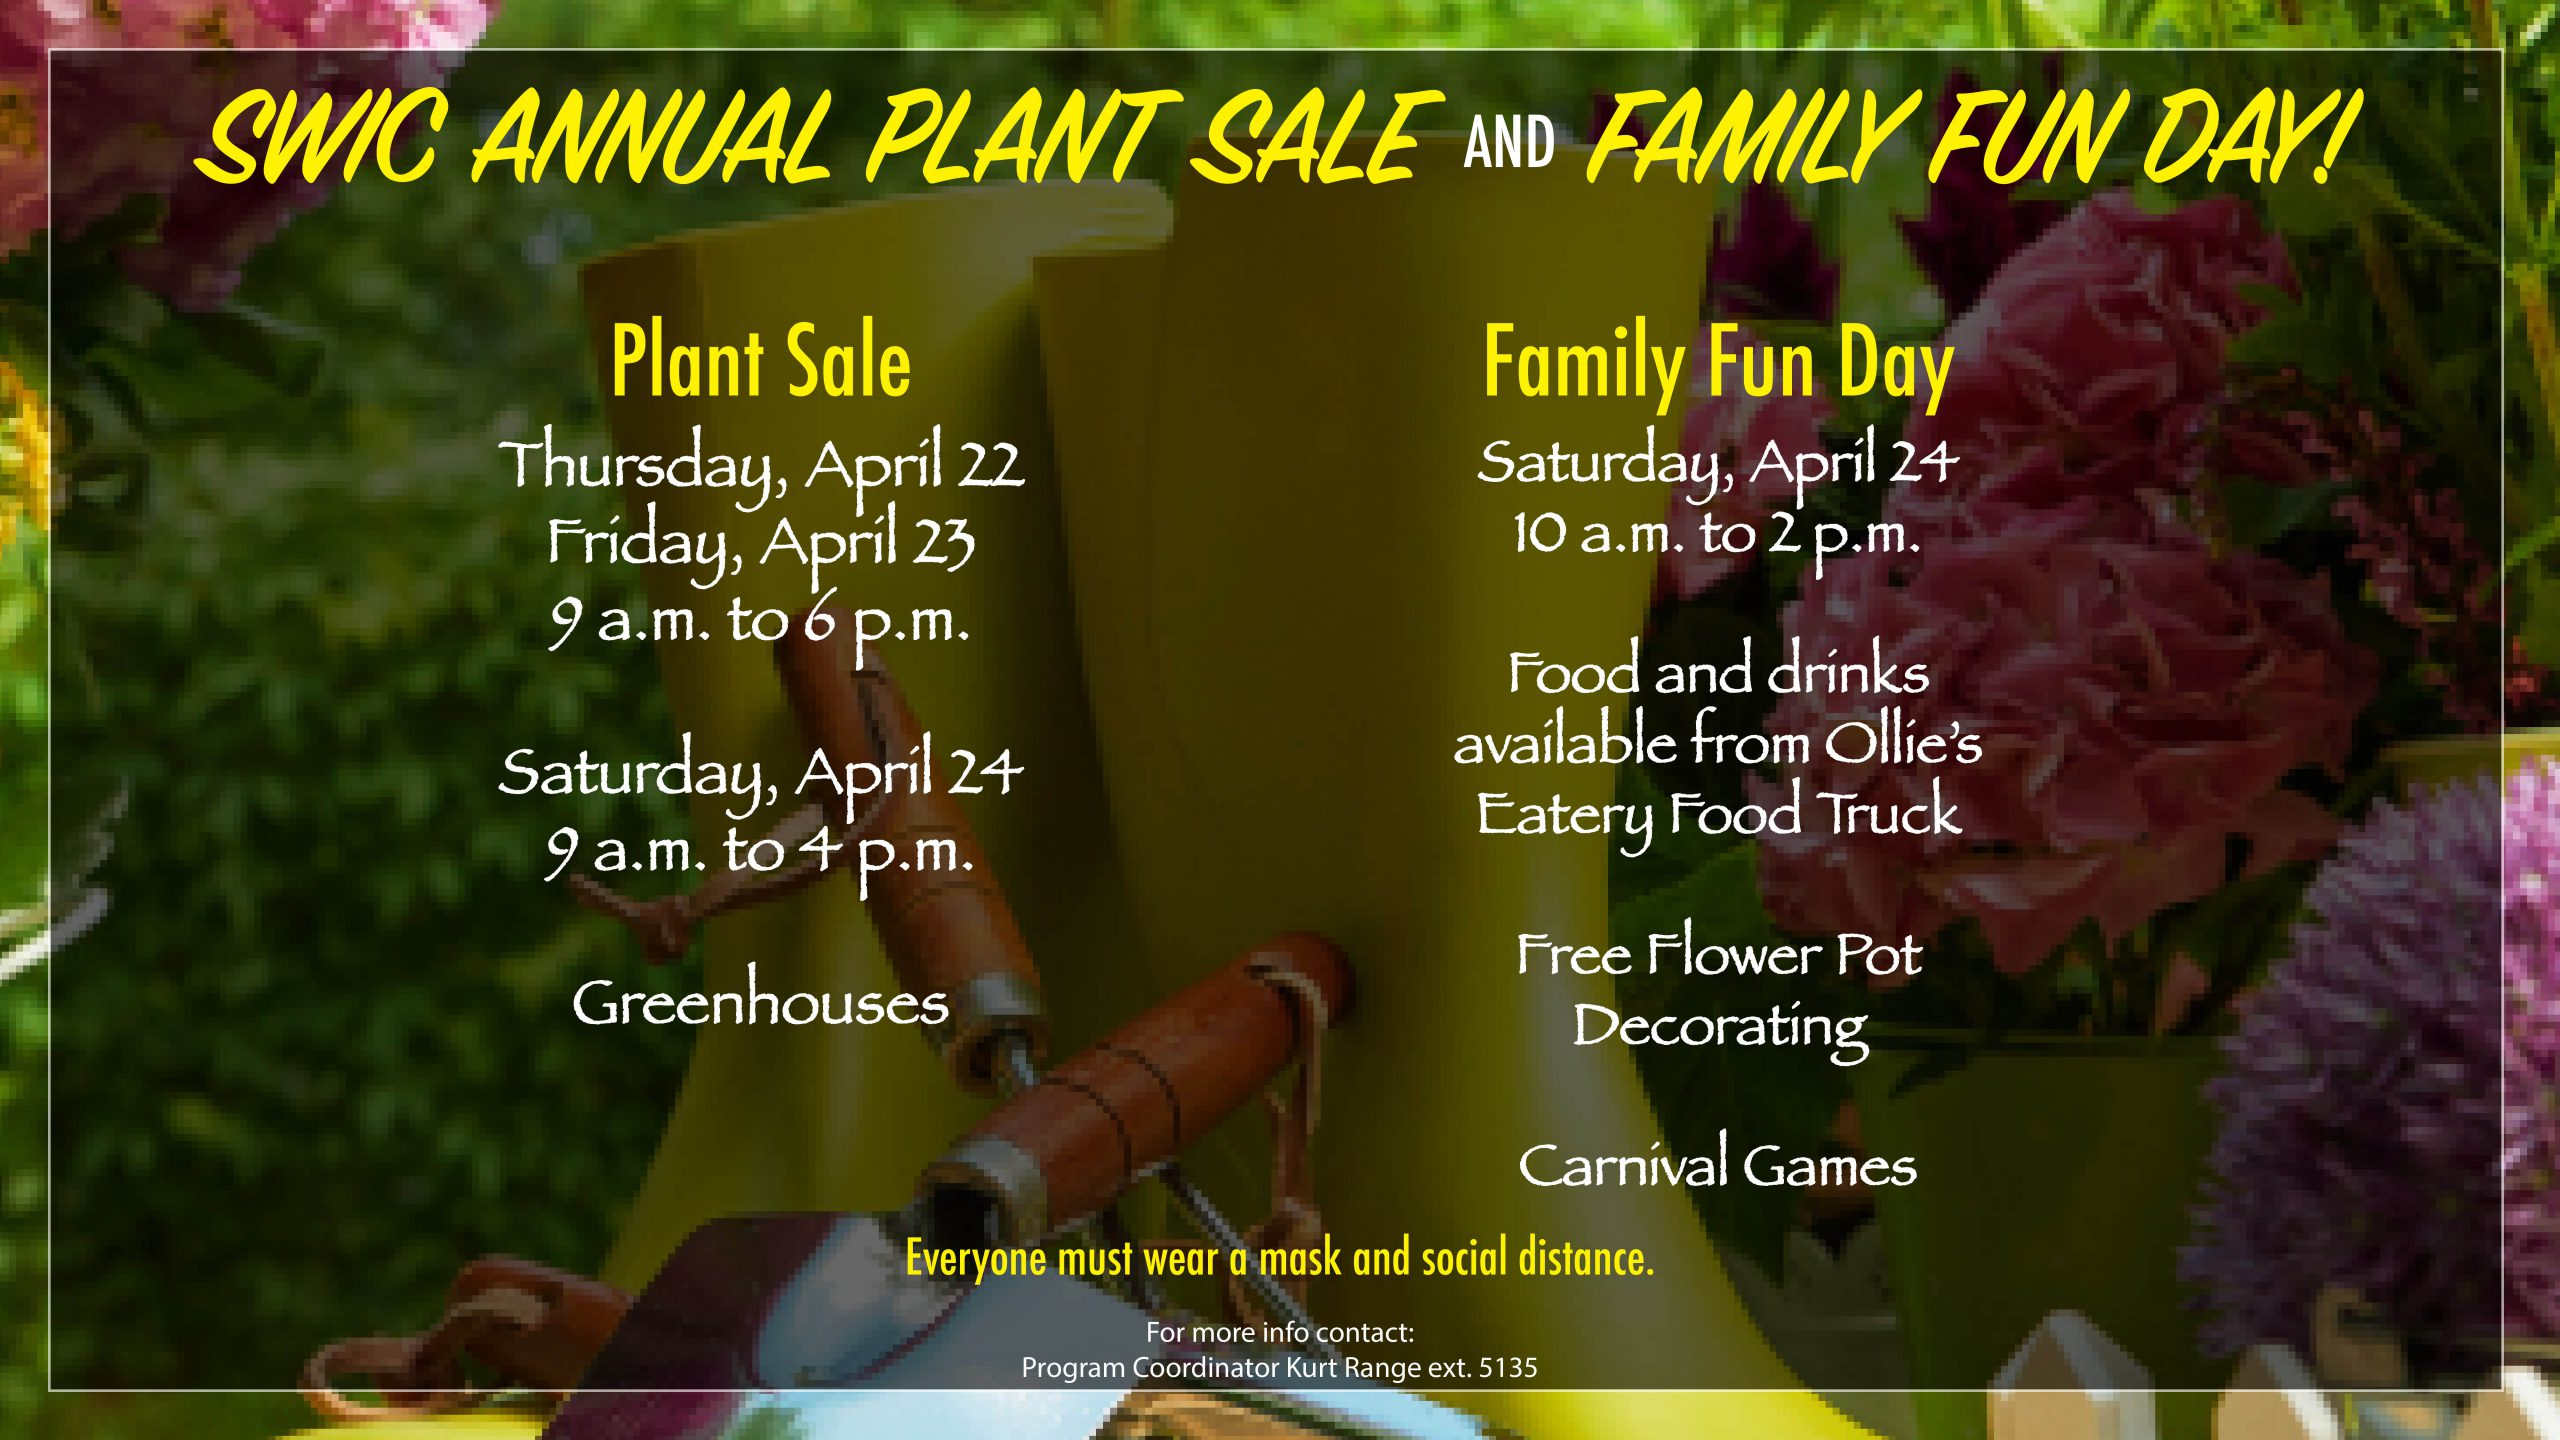 SWIC Annual Plant Sale and Family Fun Day